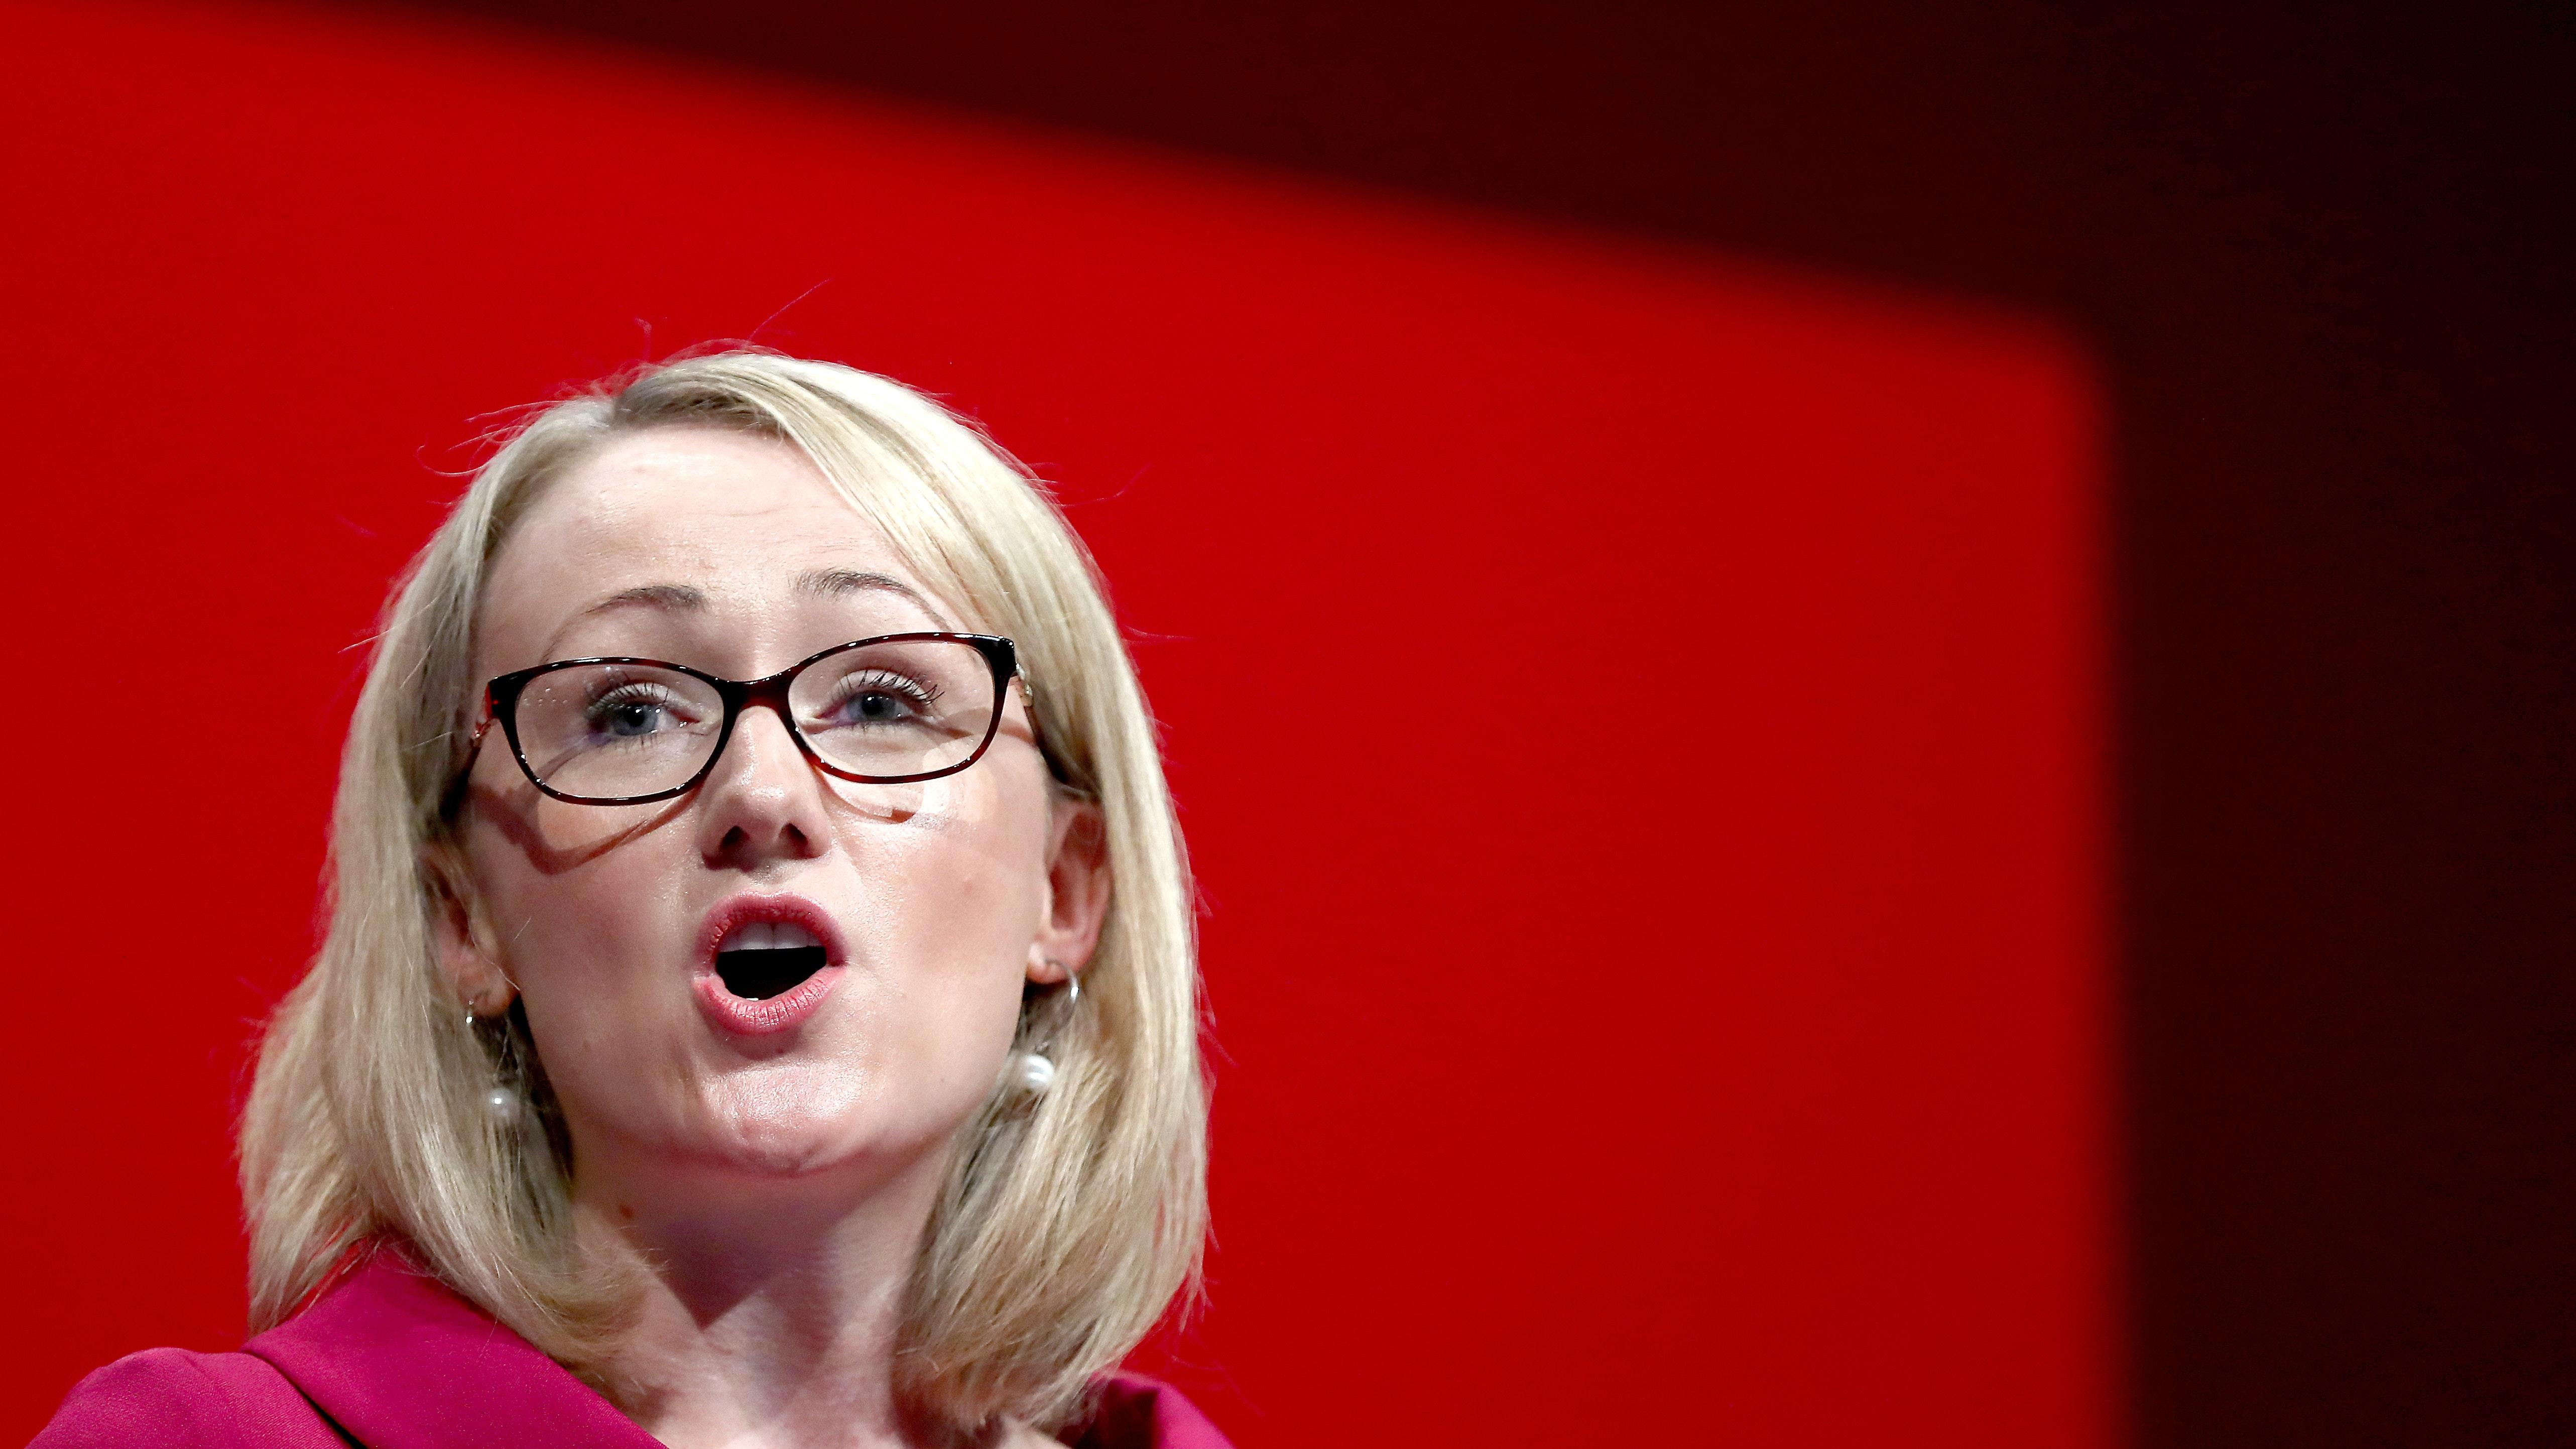 Brexit news: Labours Long-Bailey grilled on Jeremy Corbyn